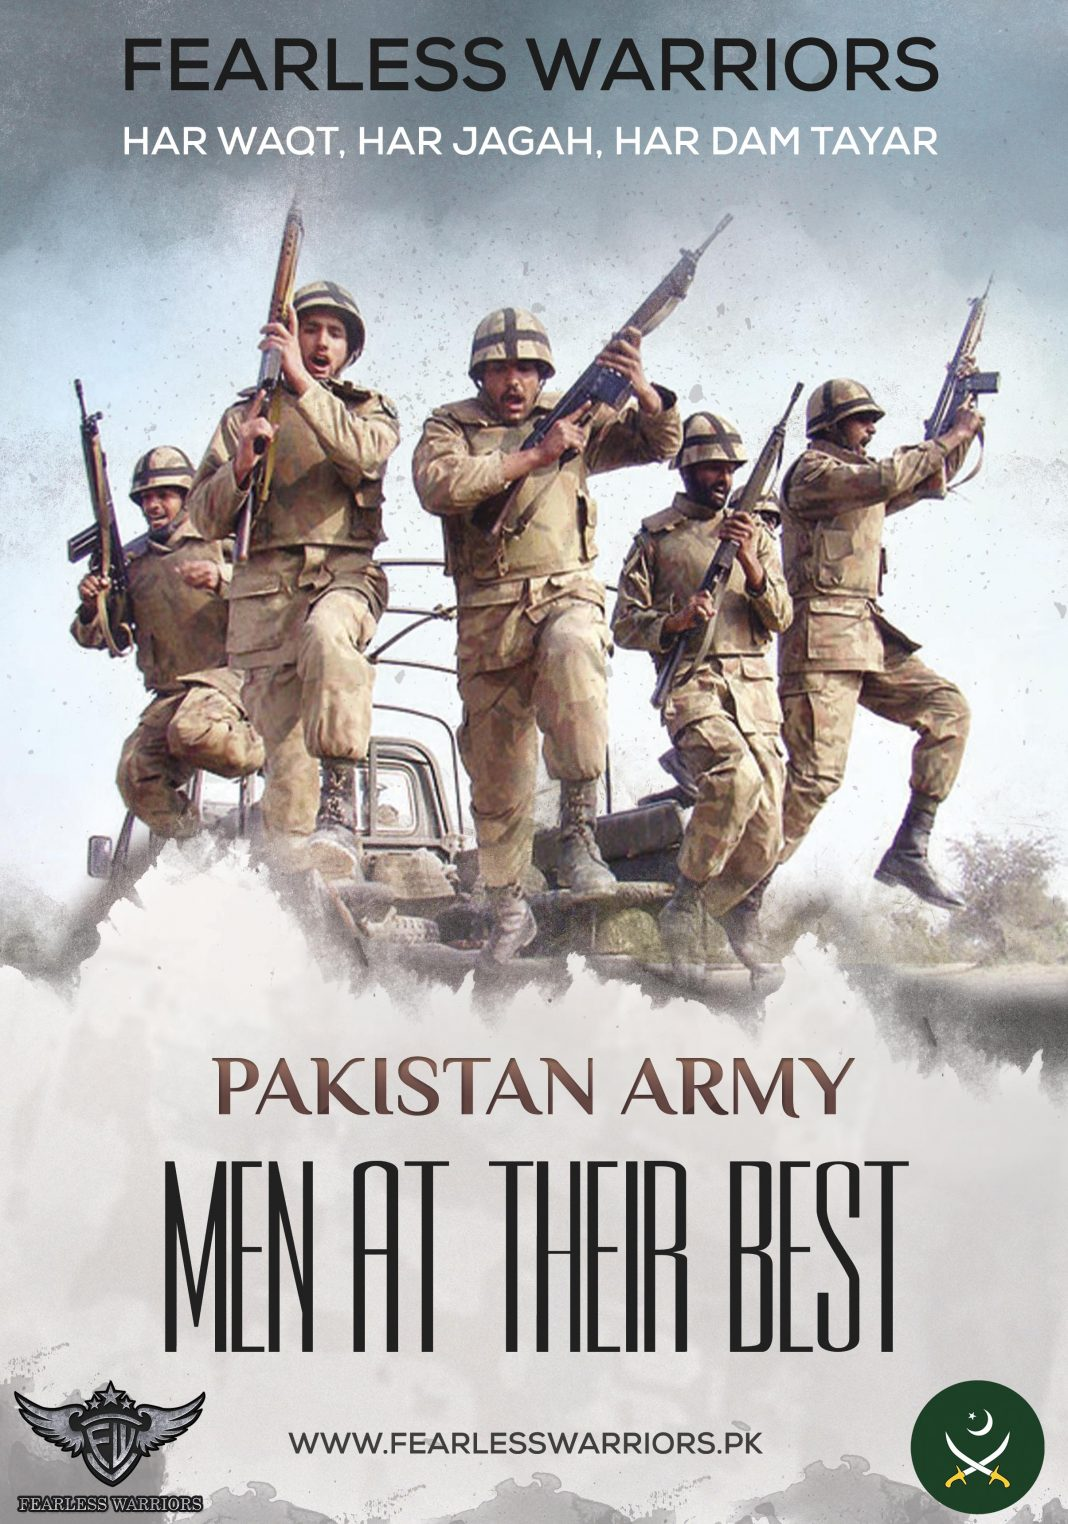 PAKISTAN ARMY - MEN AT THEIR BEST - POSTER - FEARLESSWARRIORS.PK